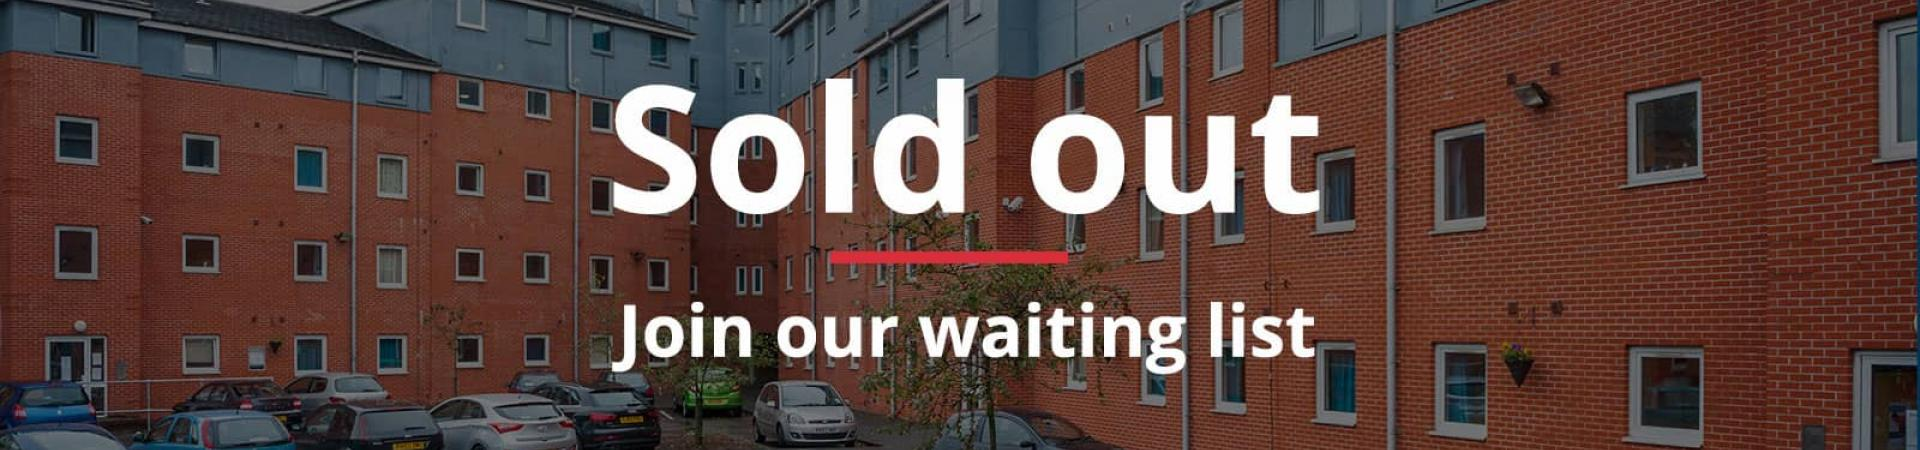 Join our waiting list for Tramways, Salford